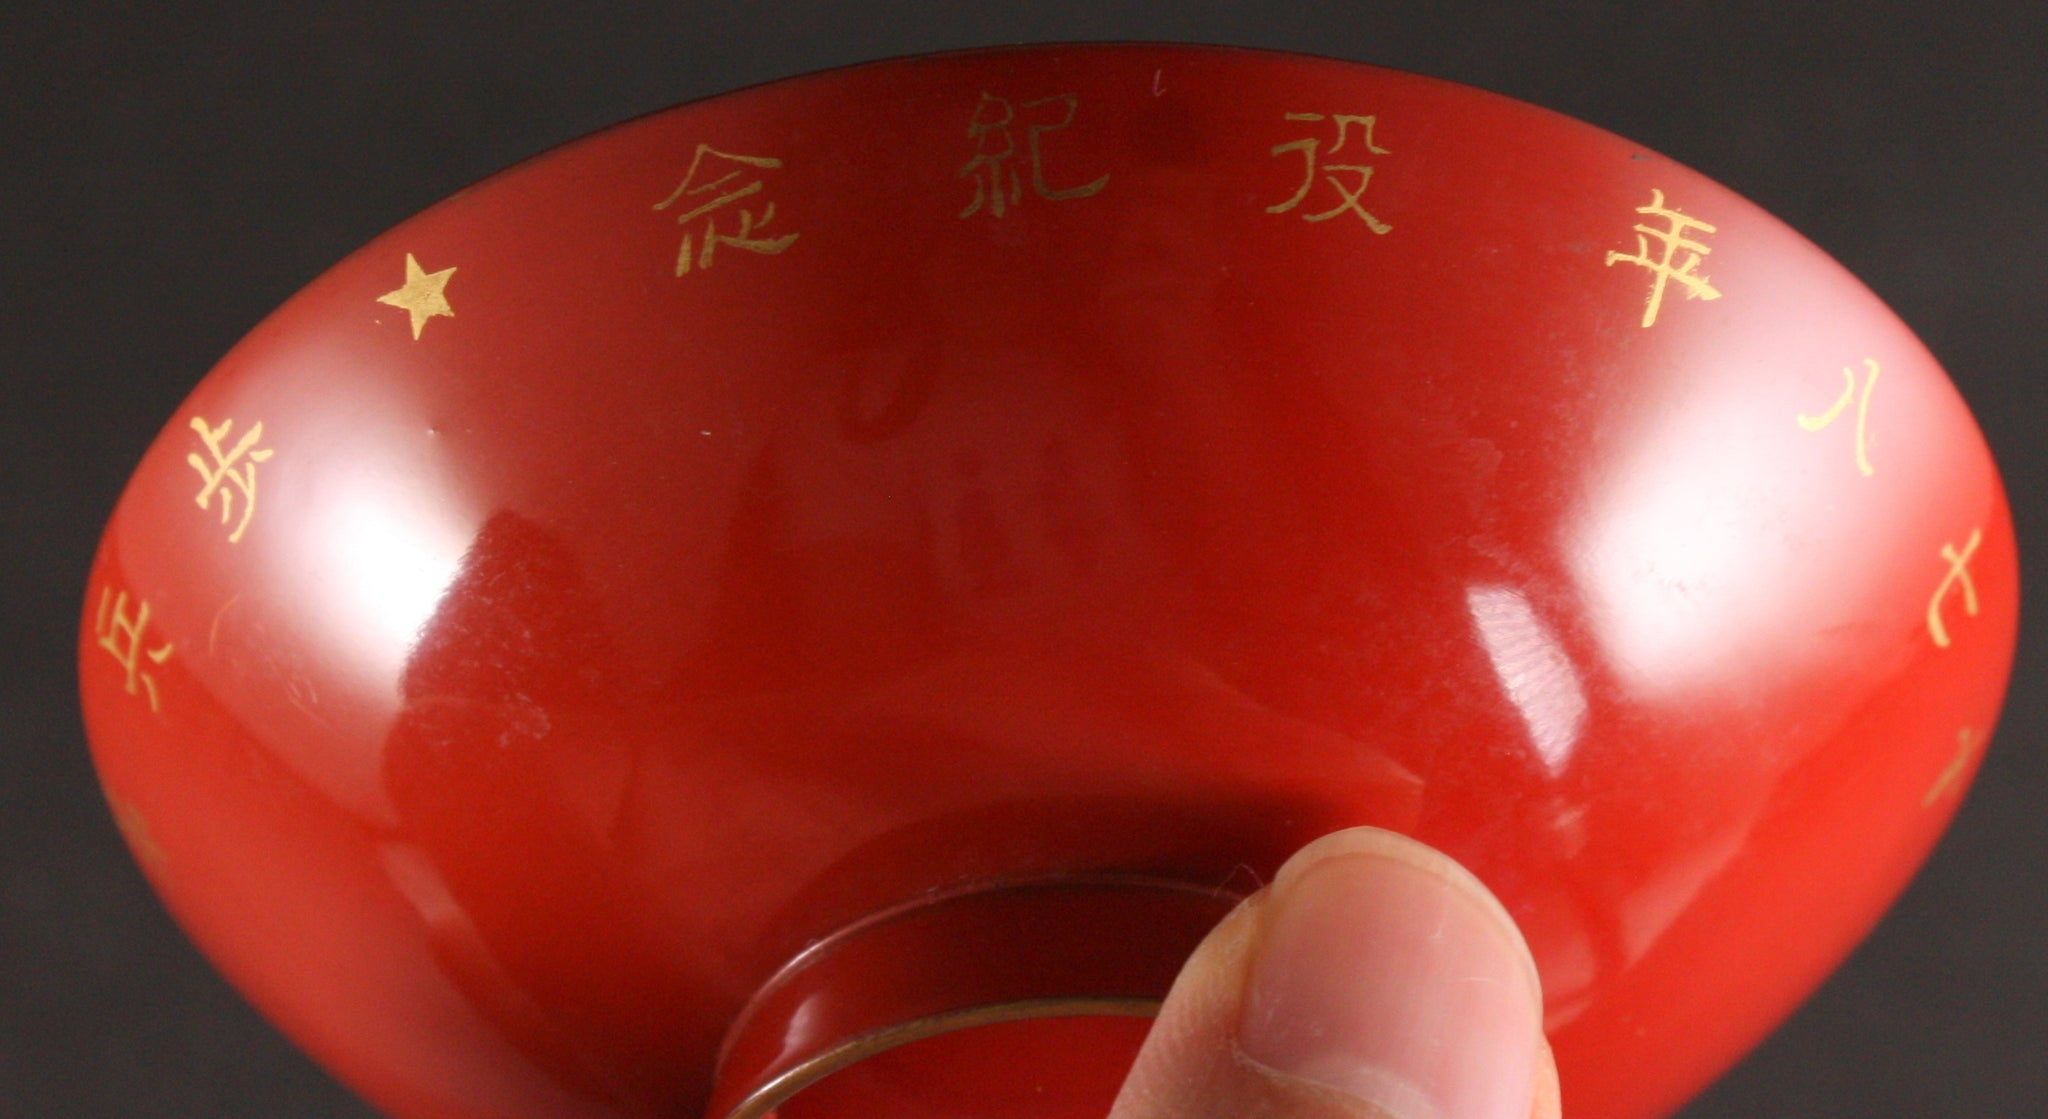 Russo Japanese War Order of Rising Sun Lacquer Army Sake Cup